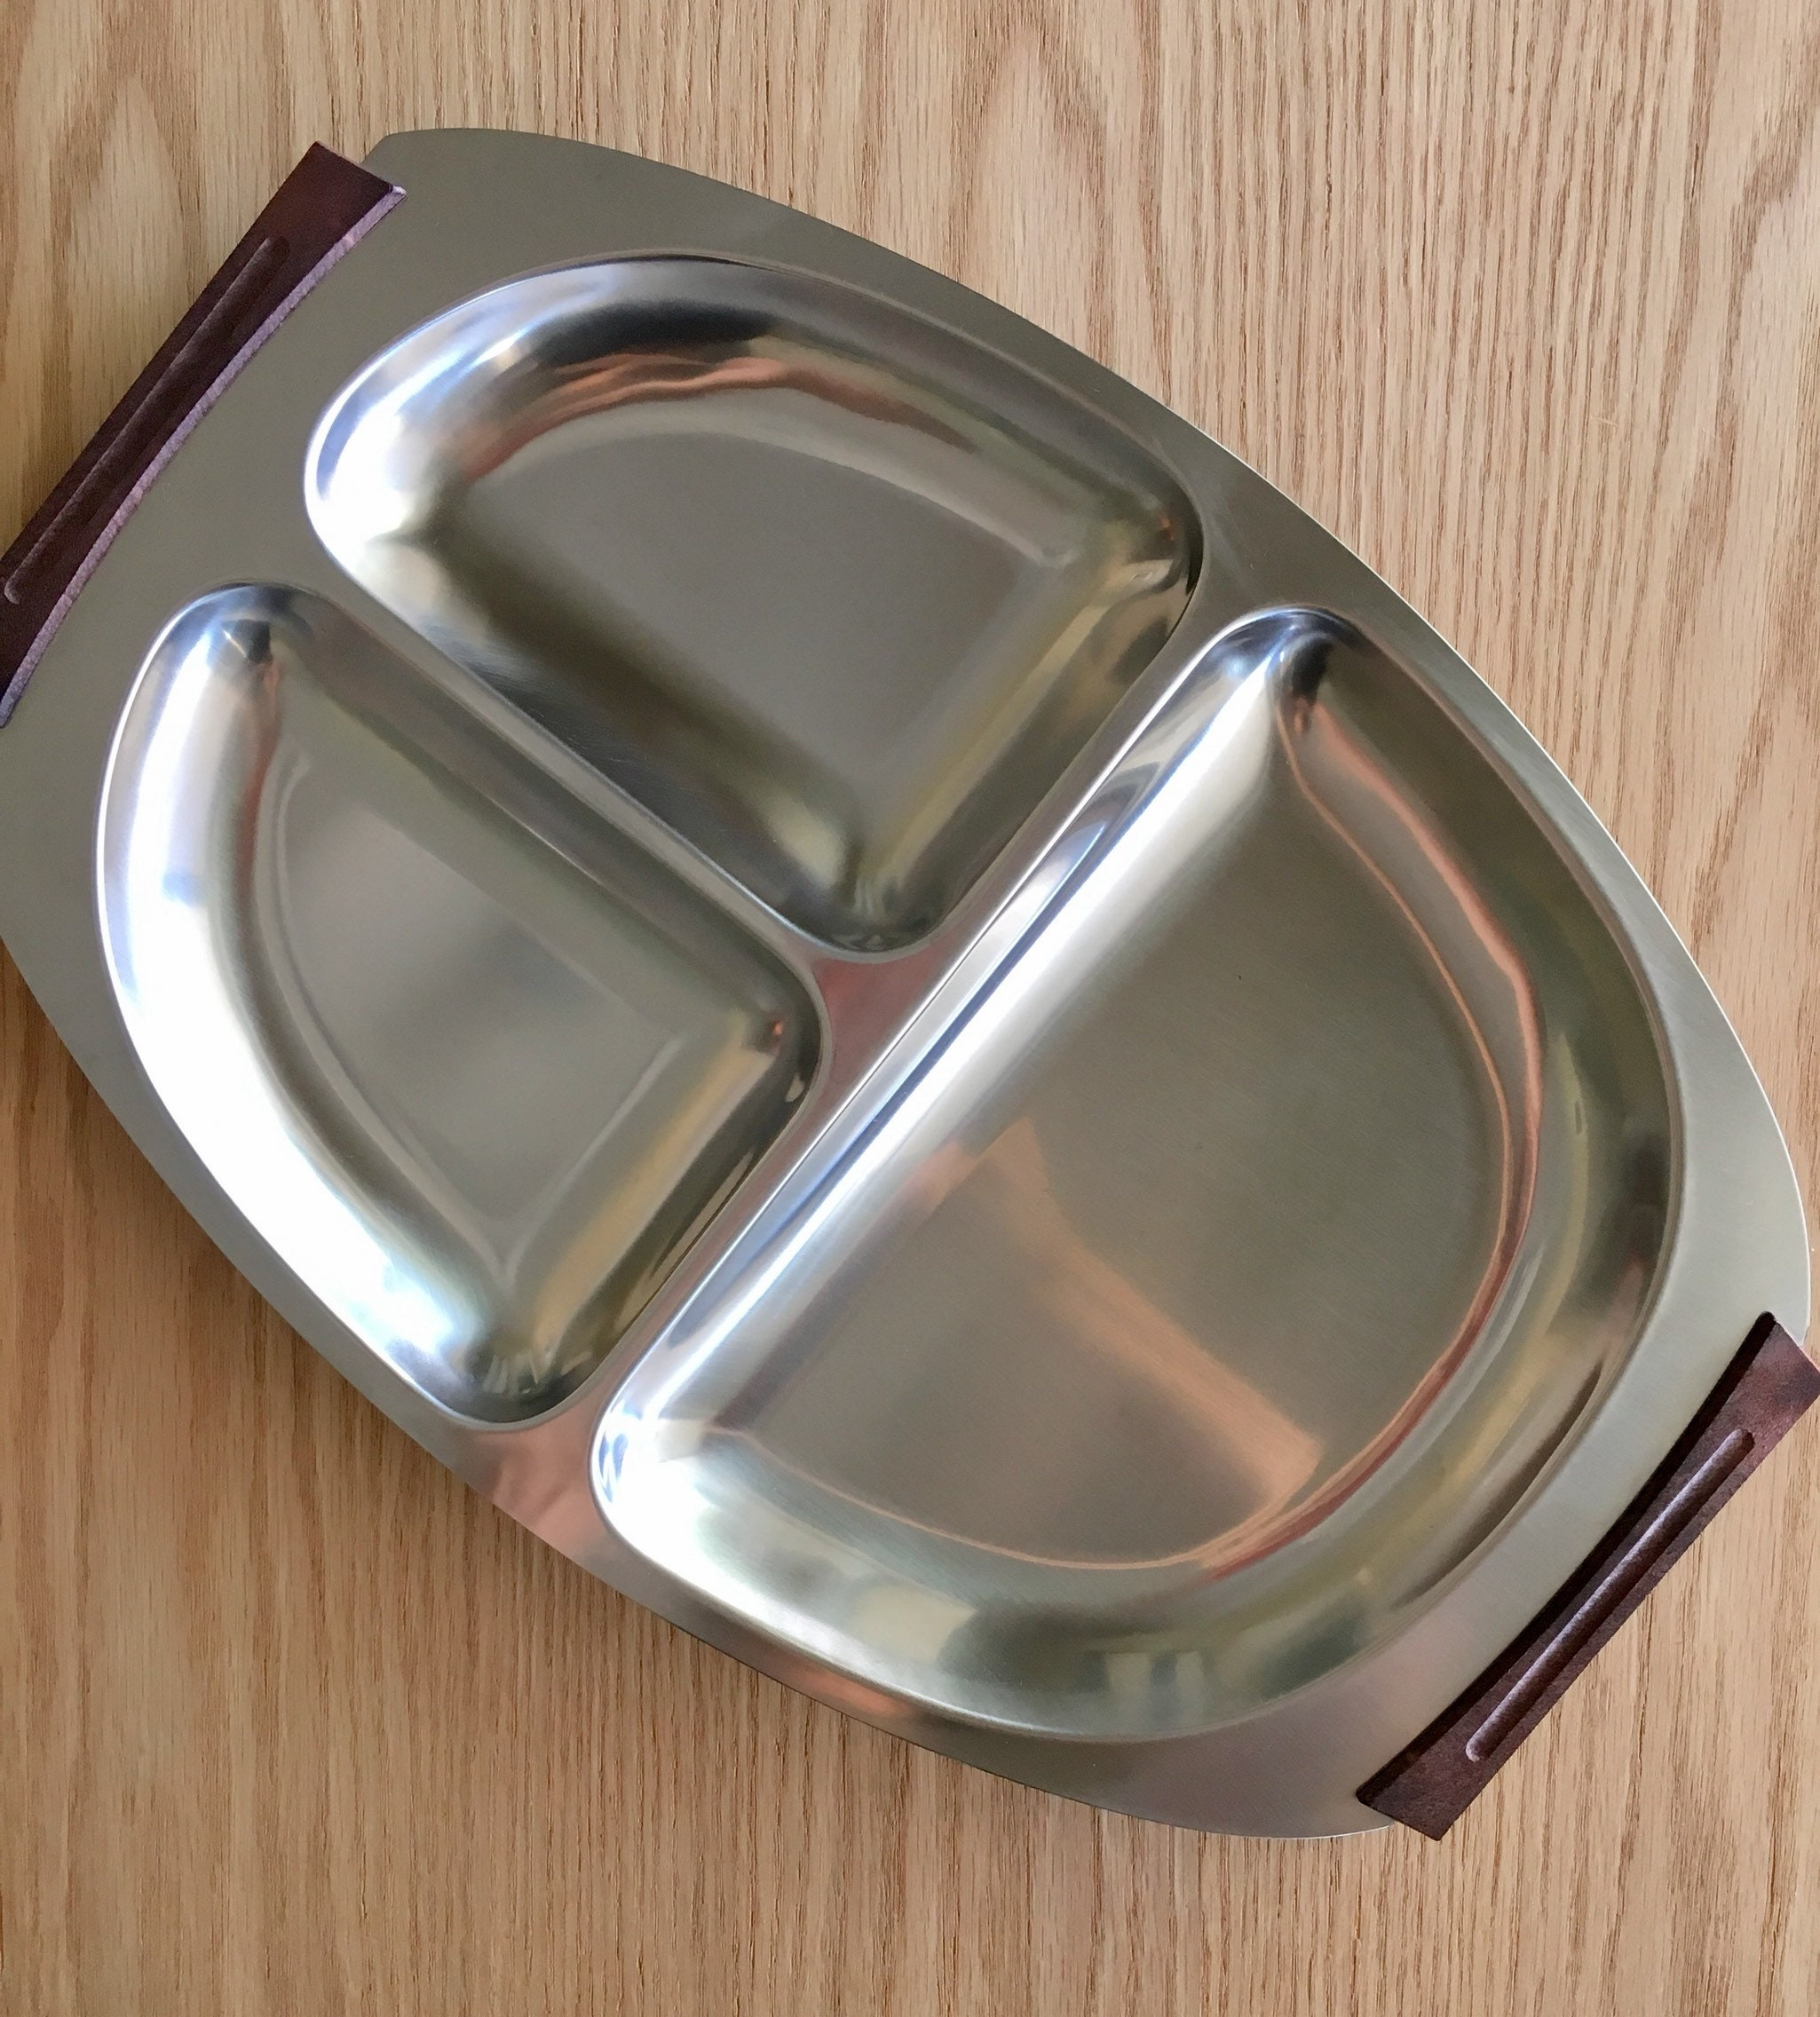 Mid Century Danish Modern Stainless Steel Divided Tray with Wood Handles